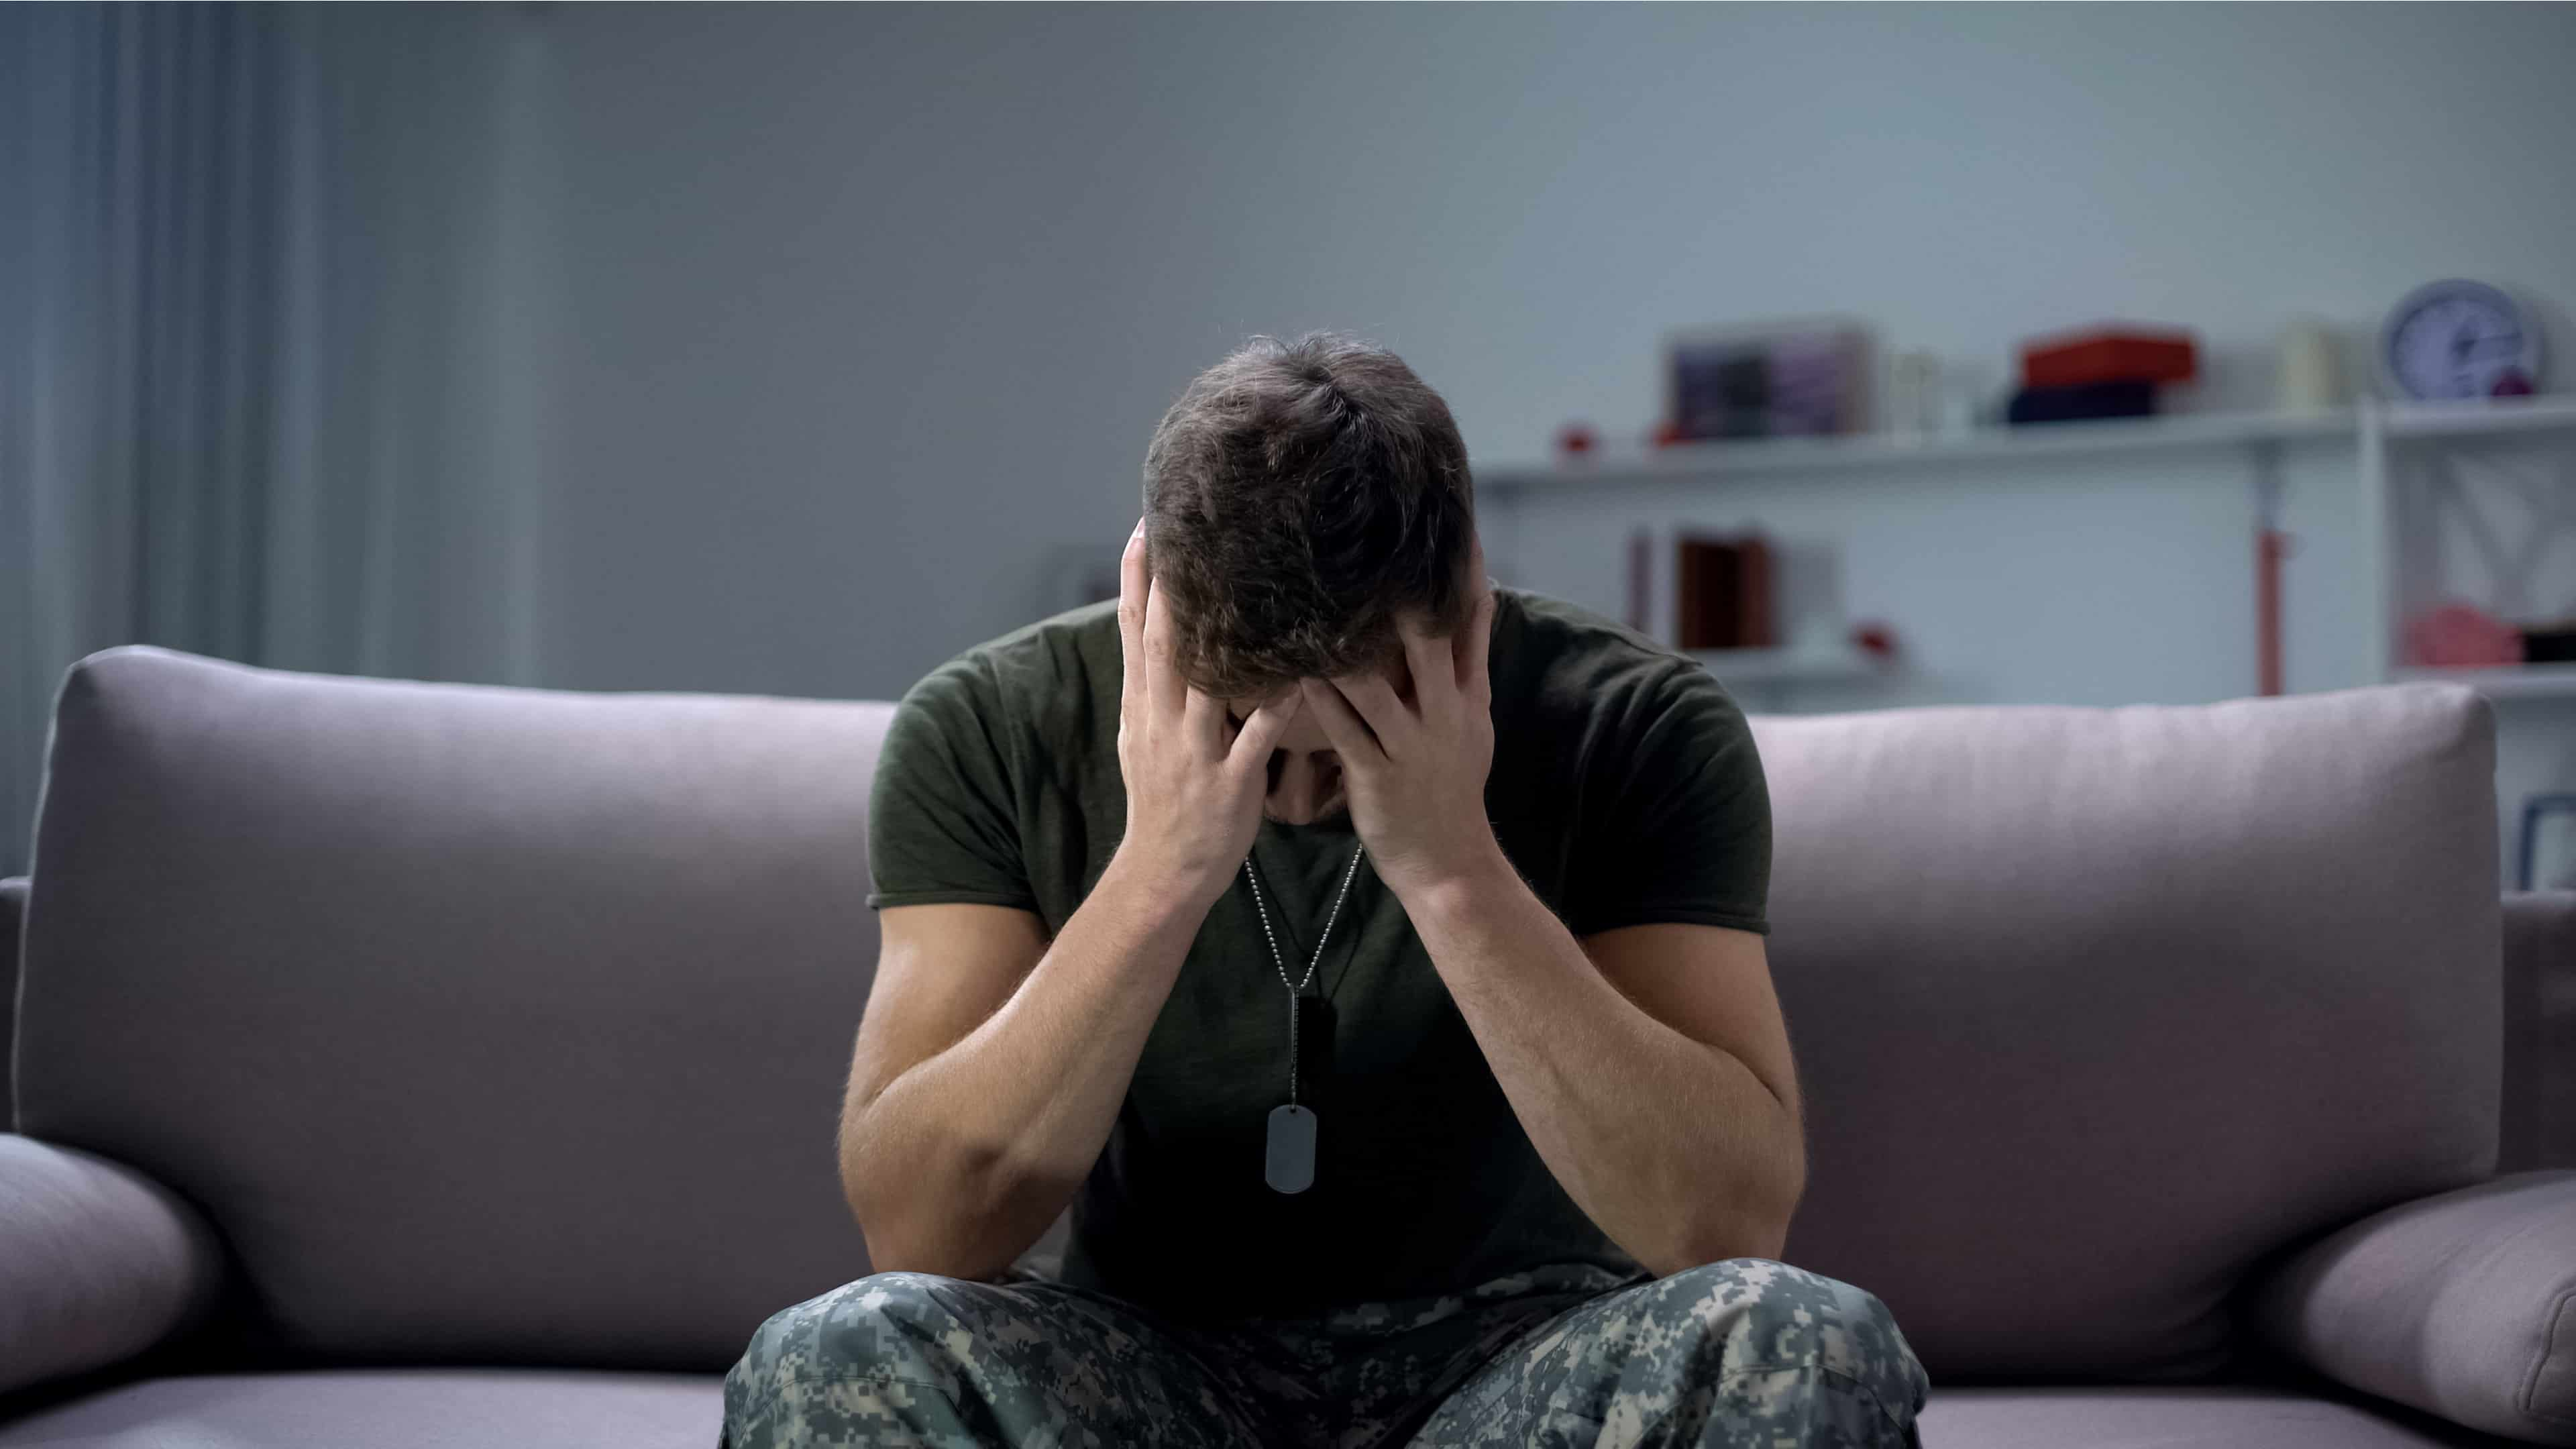 VA Disability Rating for PTSD in 2020